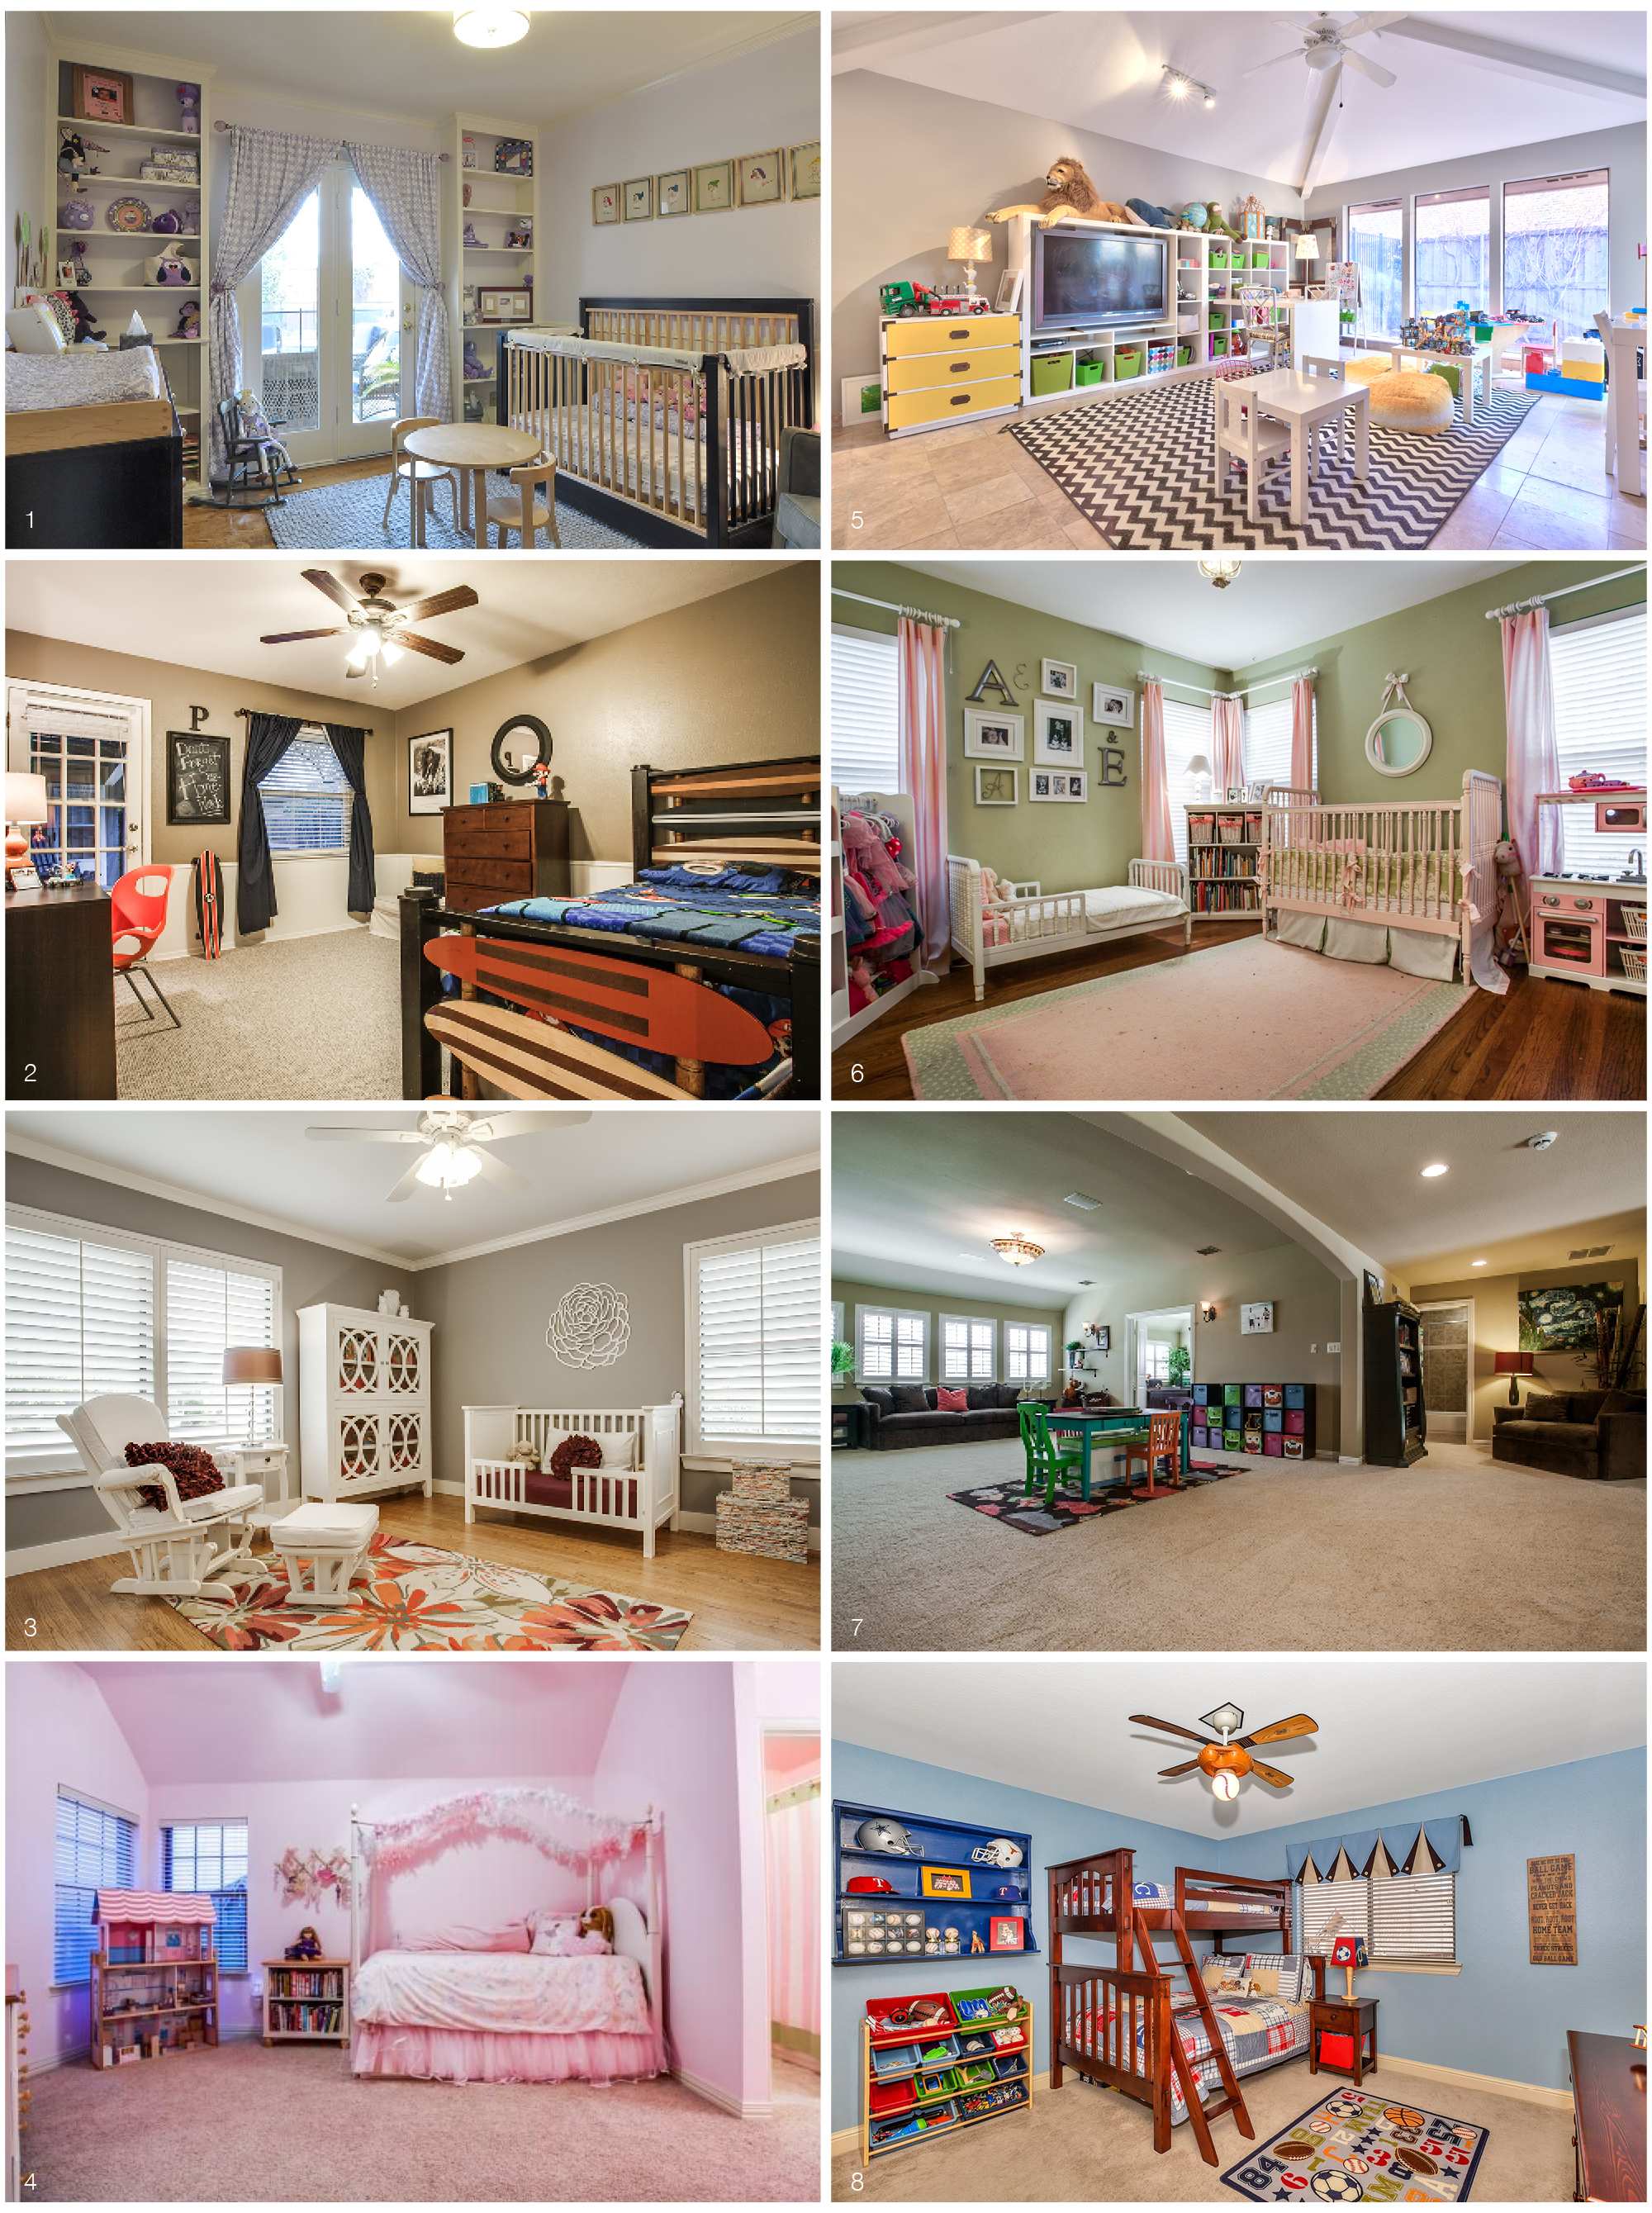 8 Great Spaces for Kids